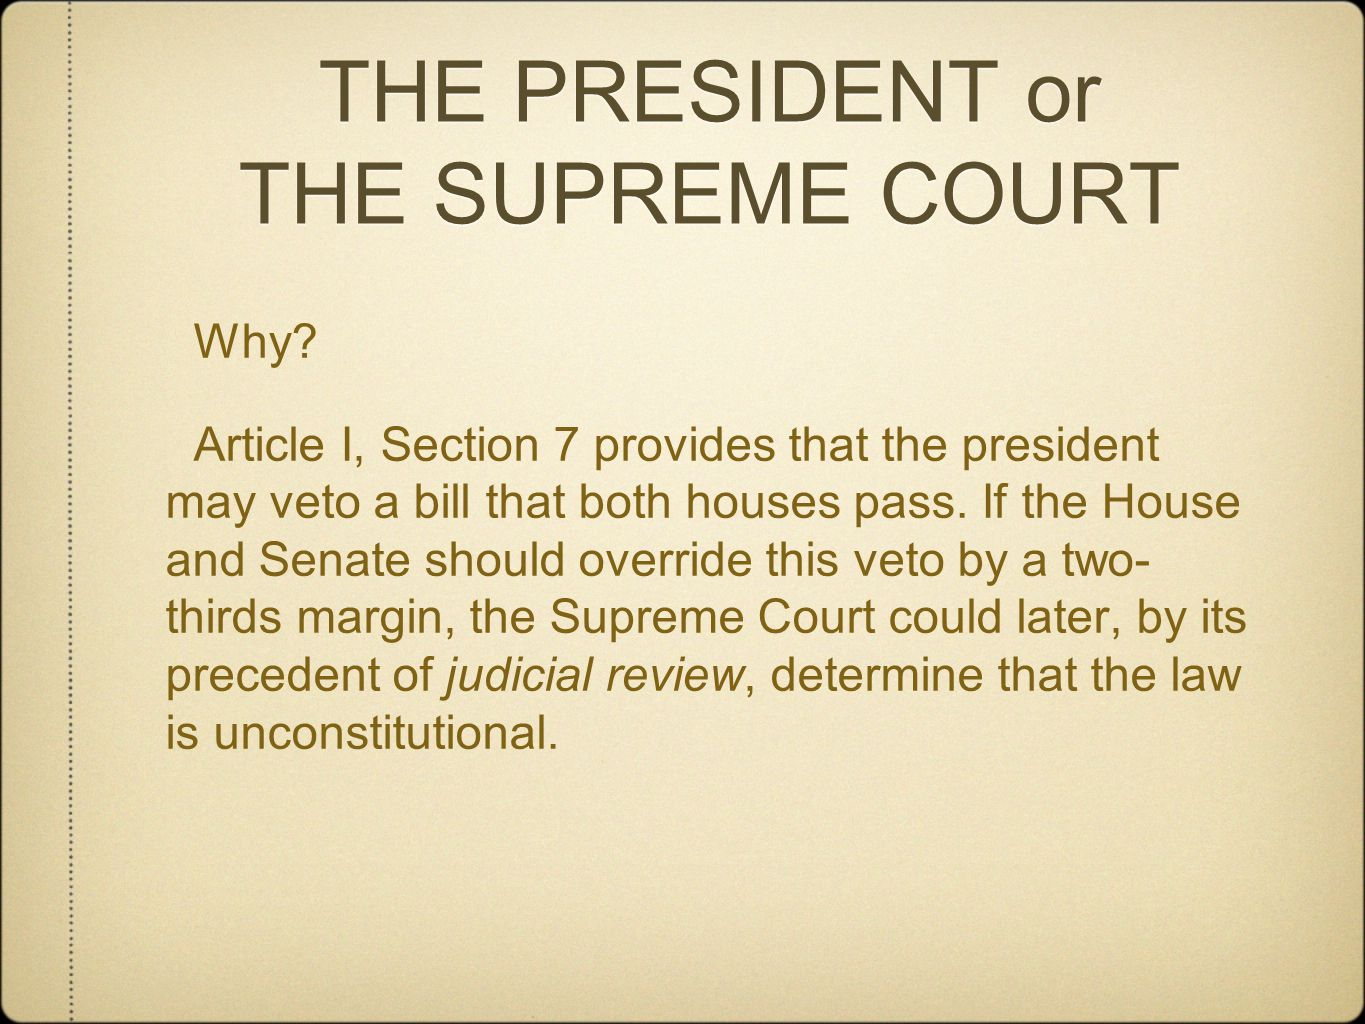 THE PRESIDENT or THE SUPREME COURT